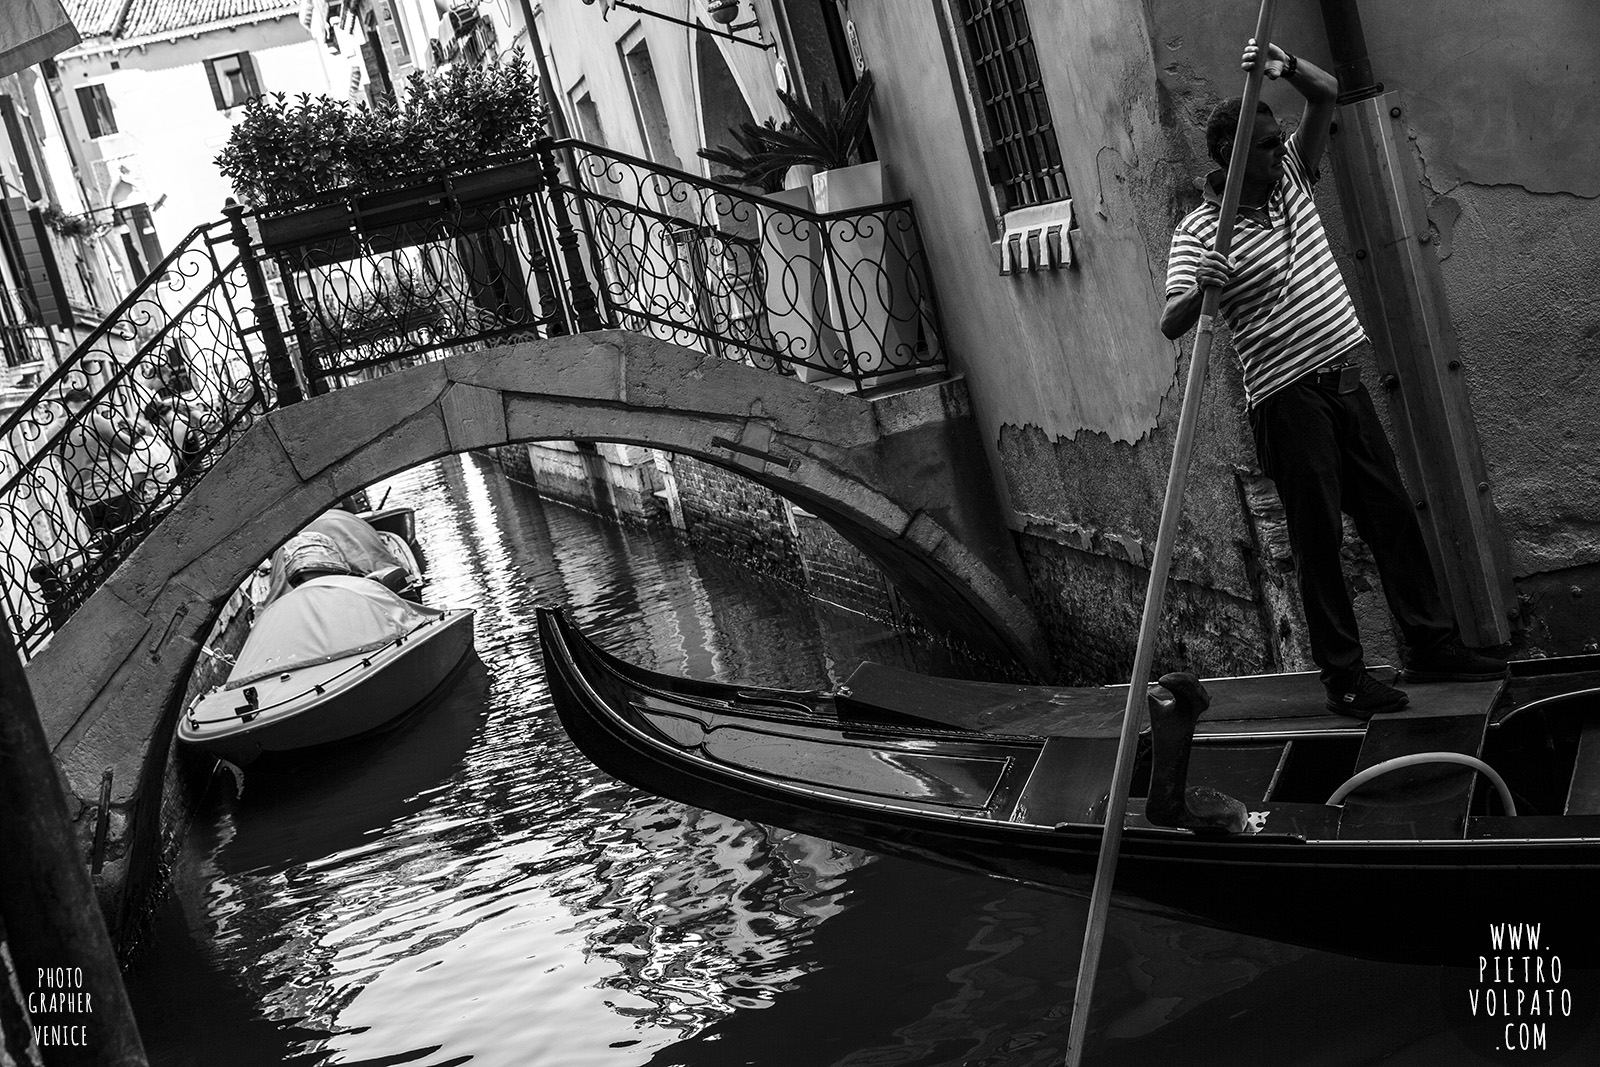 Venice photo walk - Photography workshop in Venice with photographer